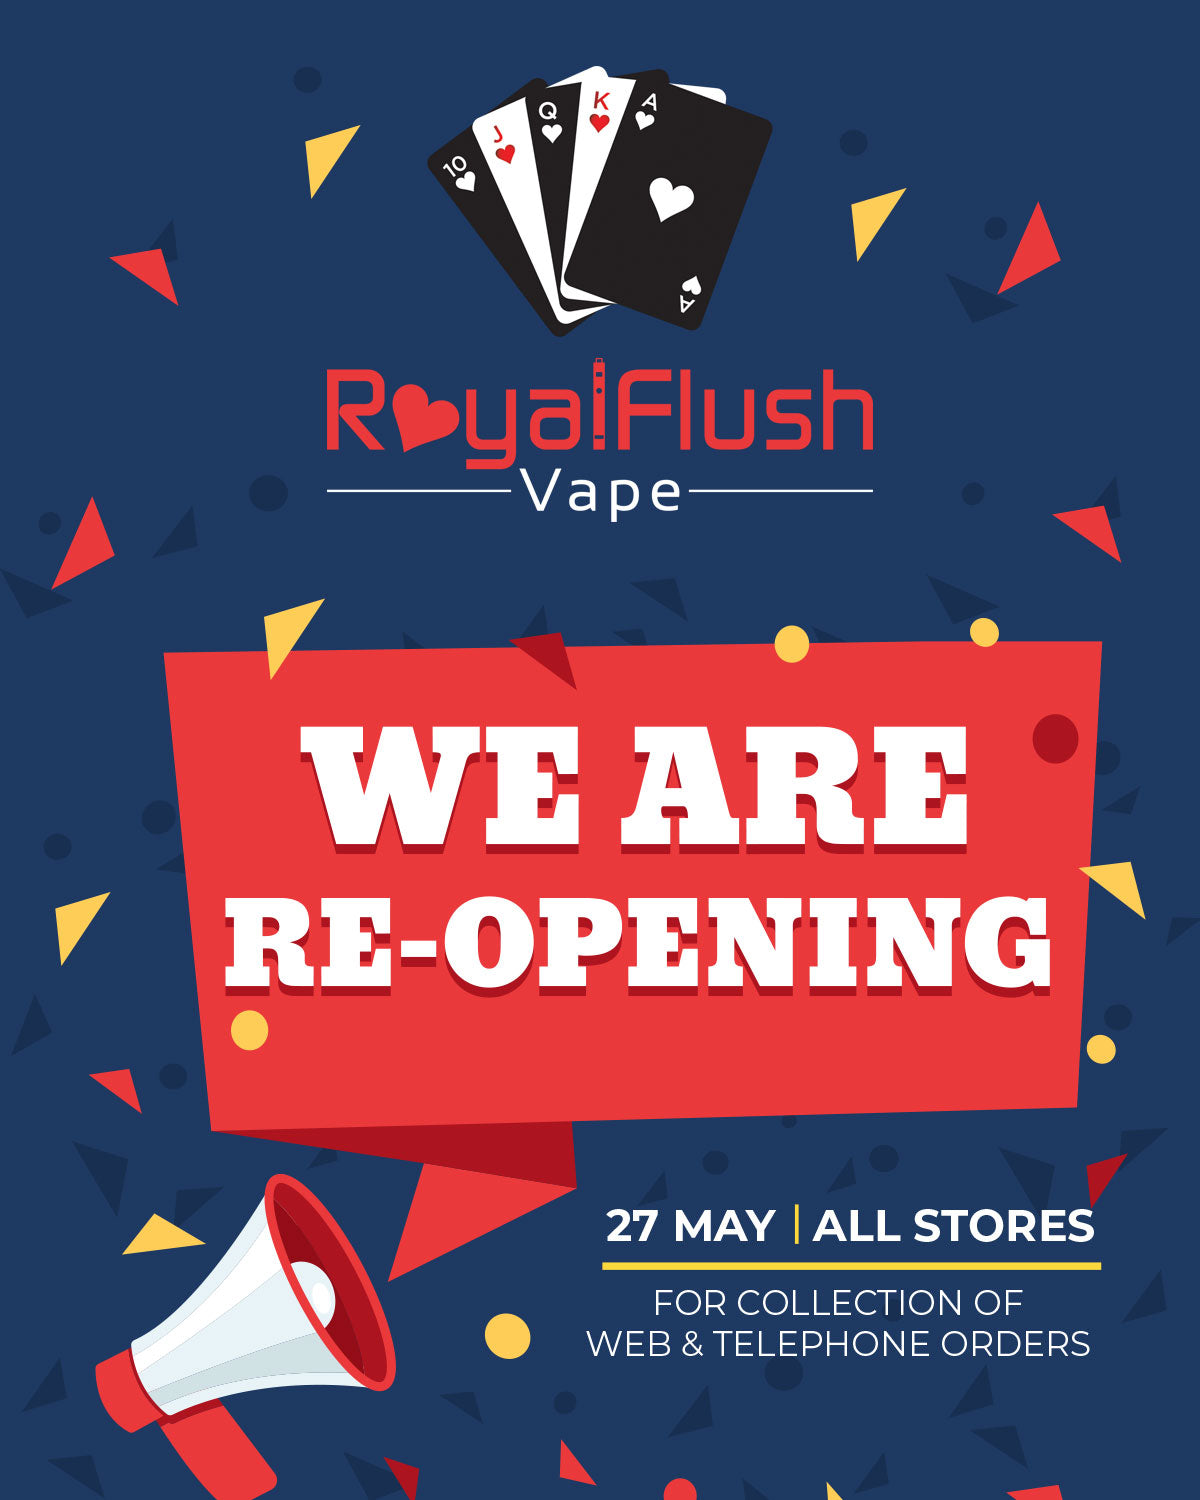 We Are Re-Opening!